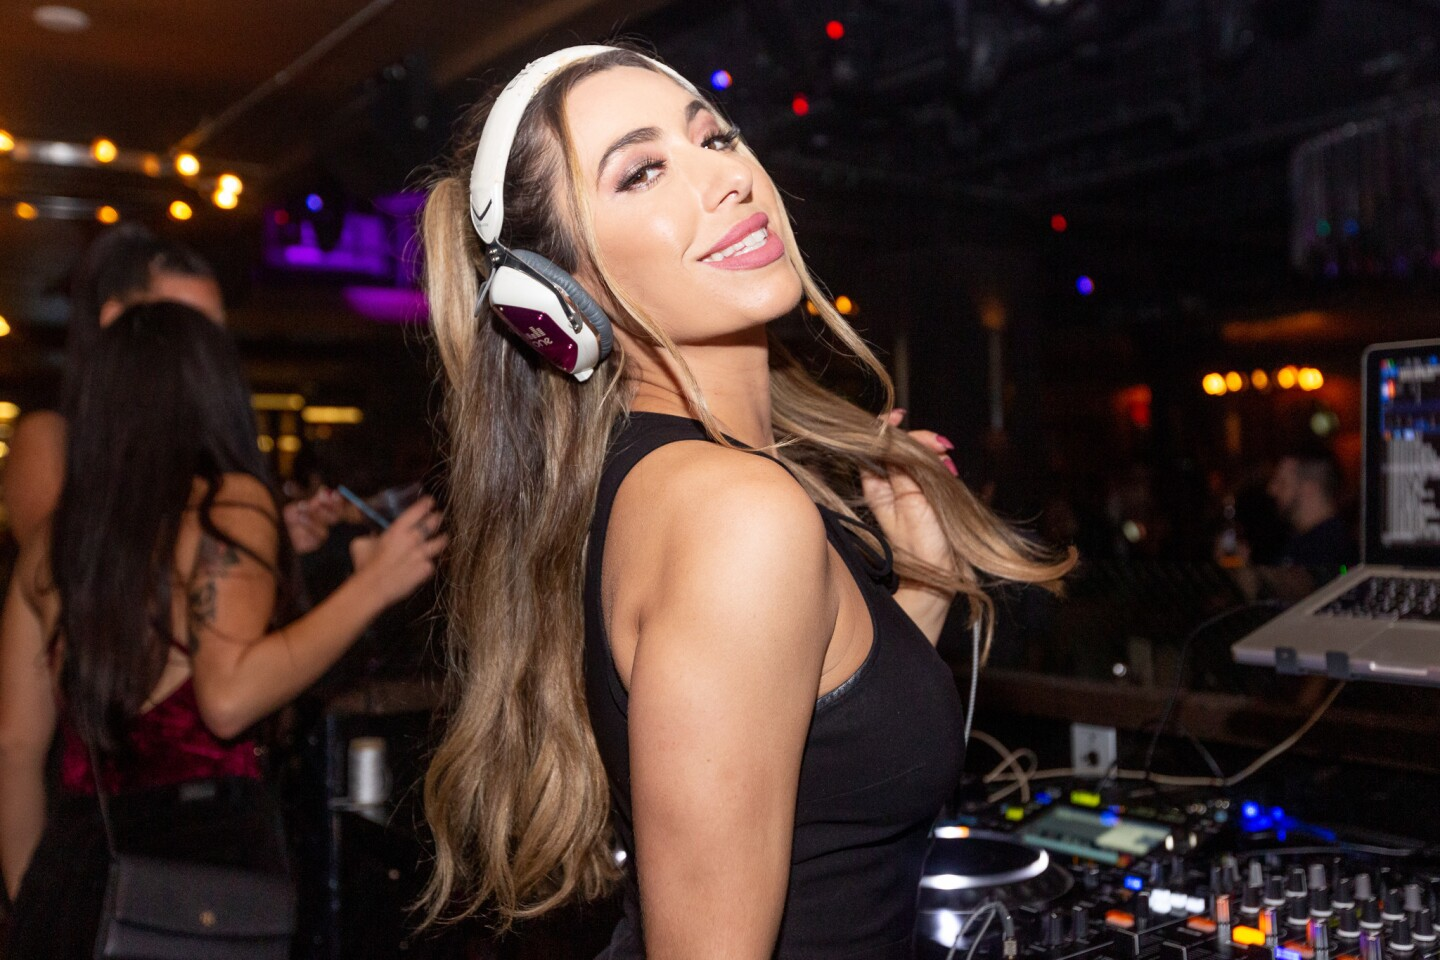 The most socially influential in San Diego gathered for Double Tap at Oxford Social Club with beats by DJ Ayla Simone on Thursday, Nov. 15, 2018.